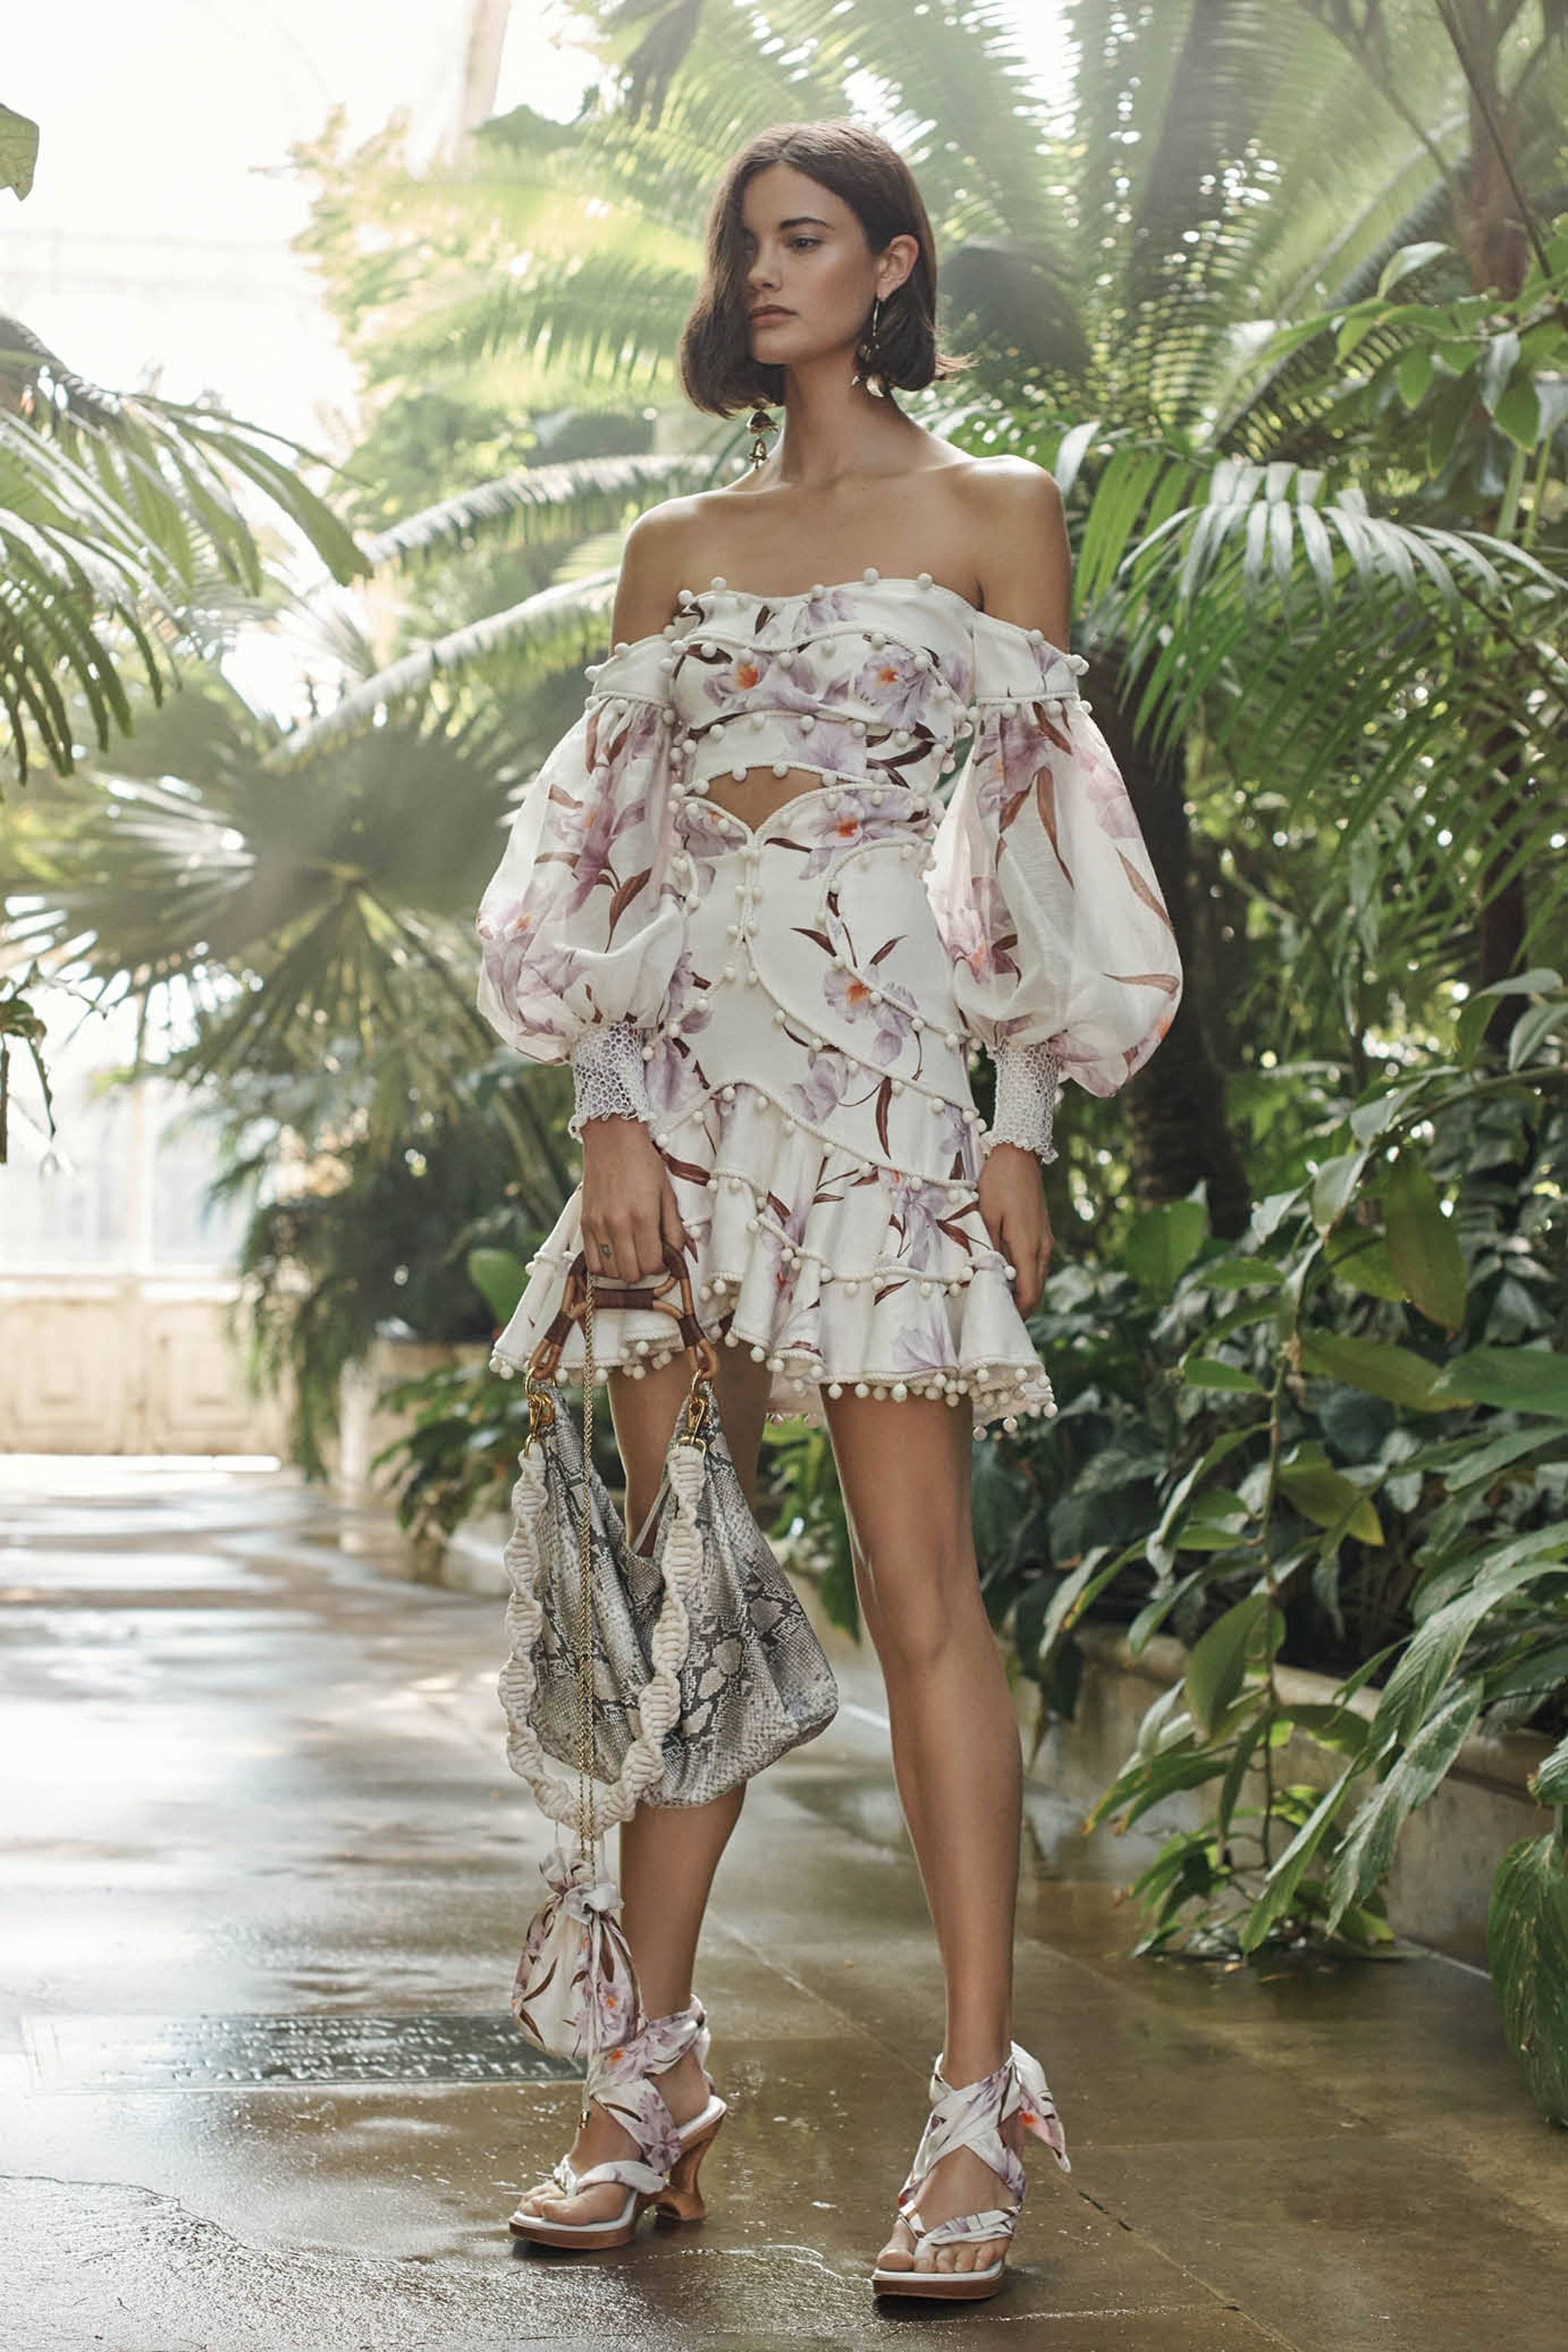 00024-zimmermann-vogue-resort-2019-pr.jpg